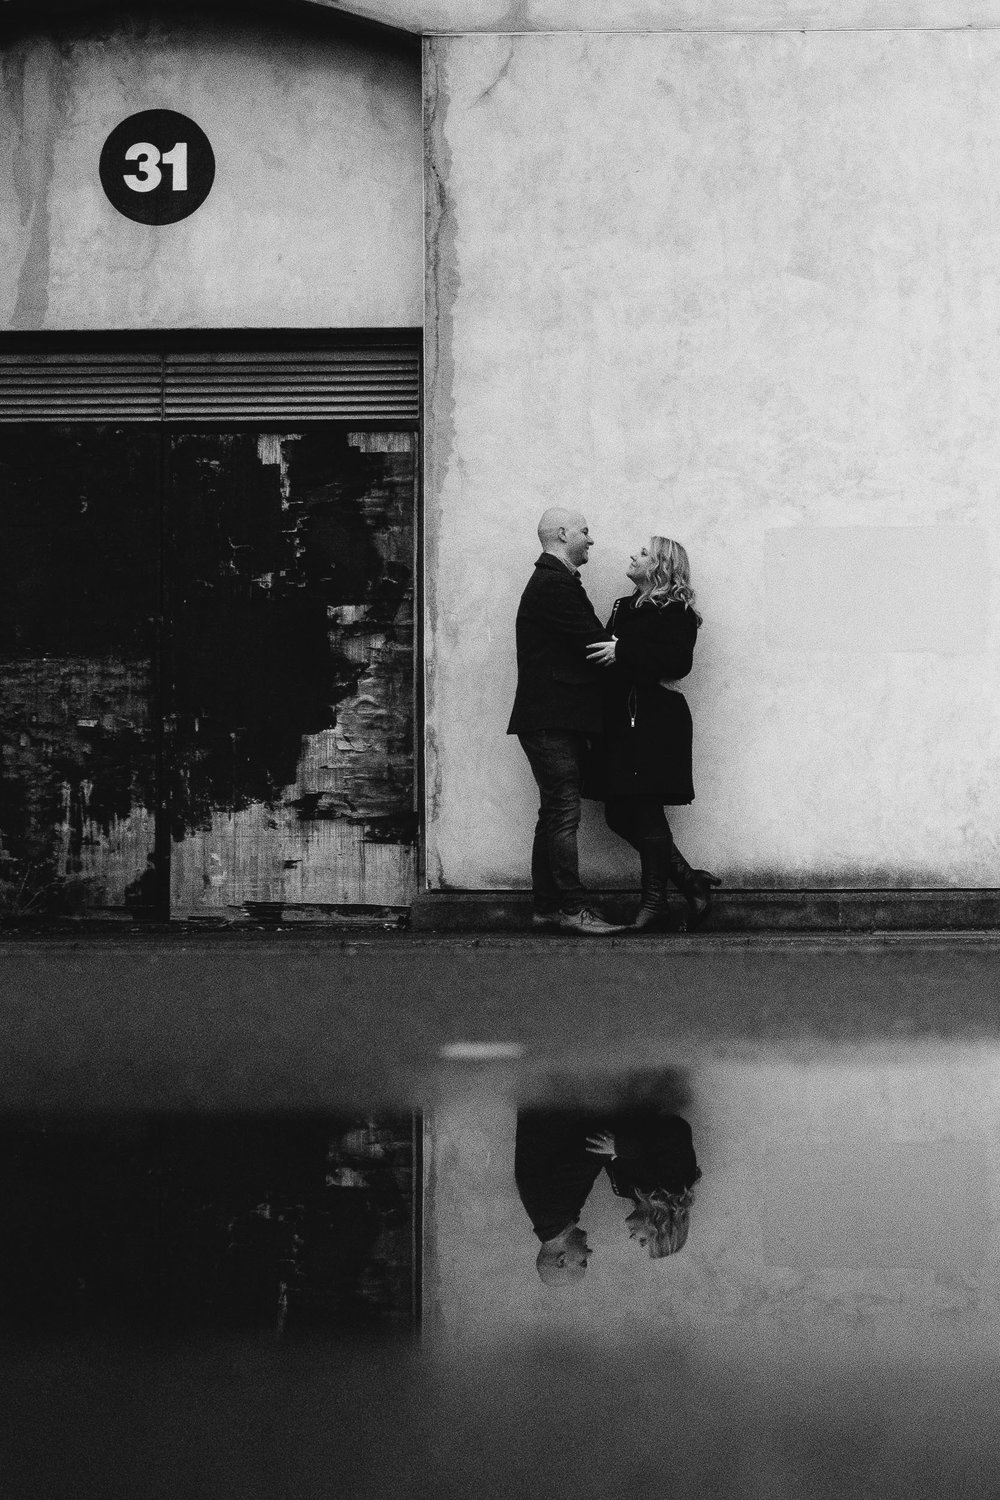 A black and white photo of a couple cuddling near a doorway with the paint peeling